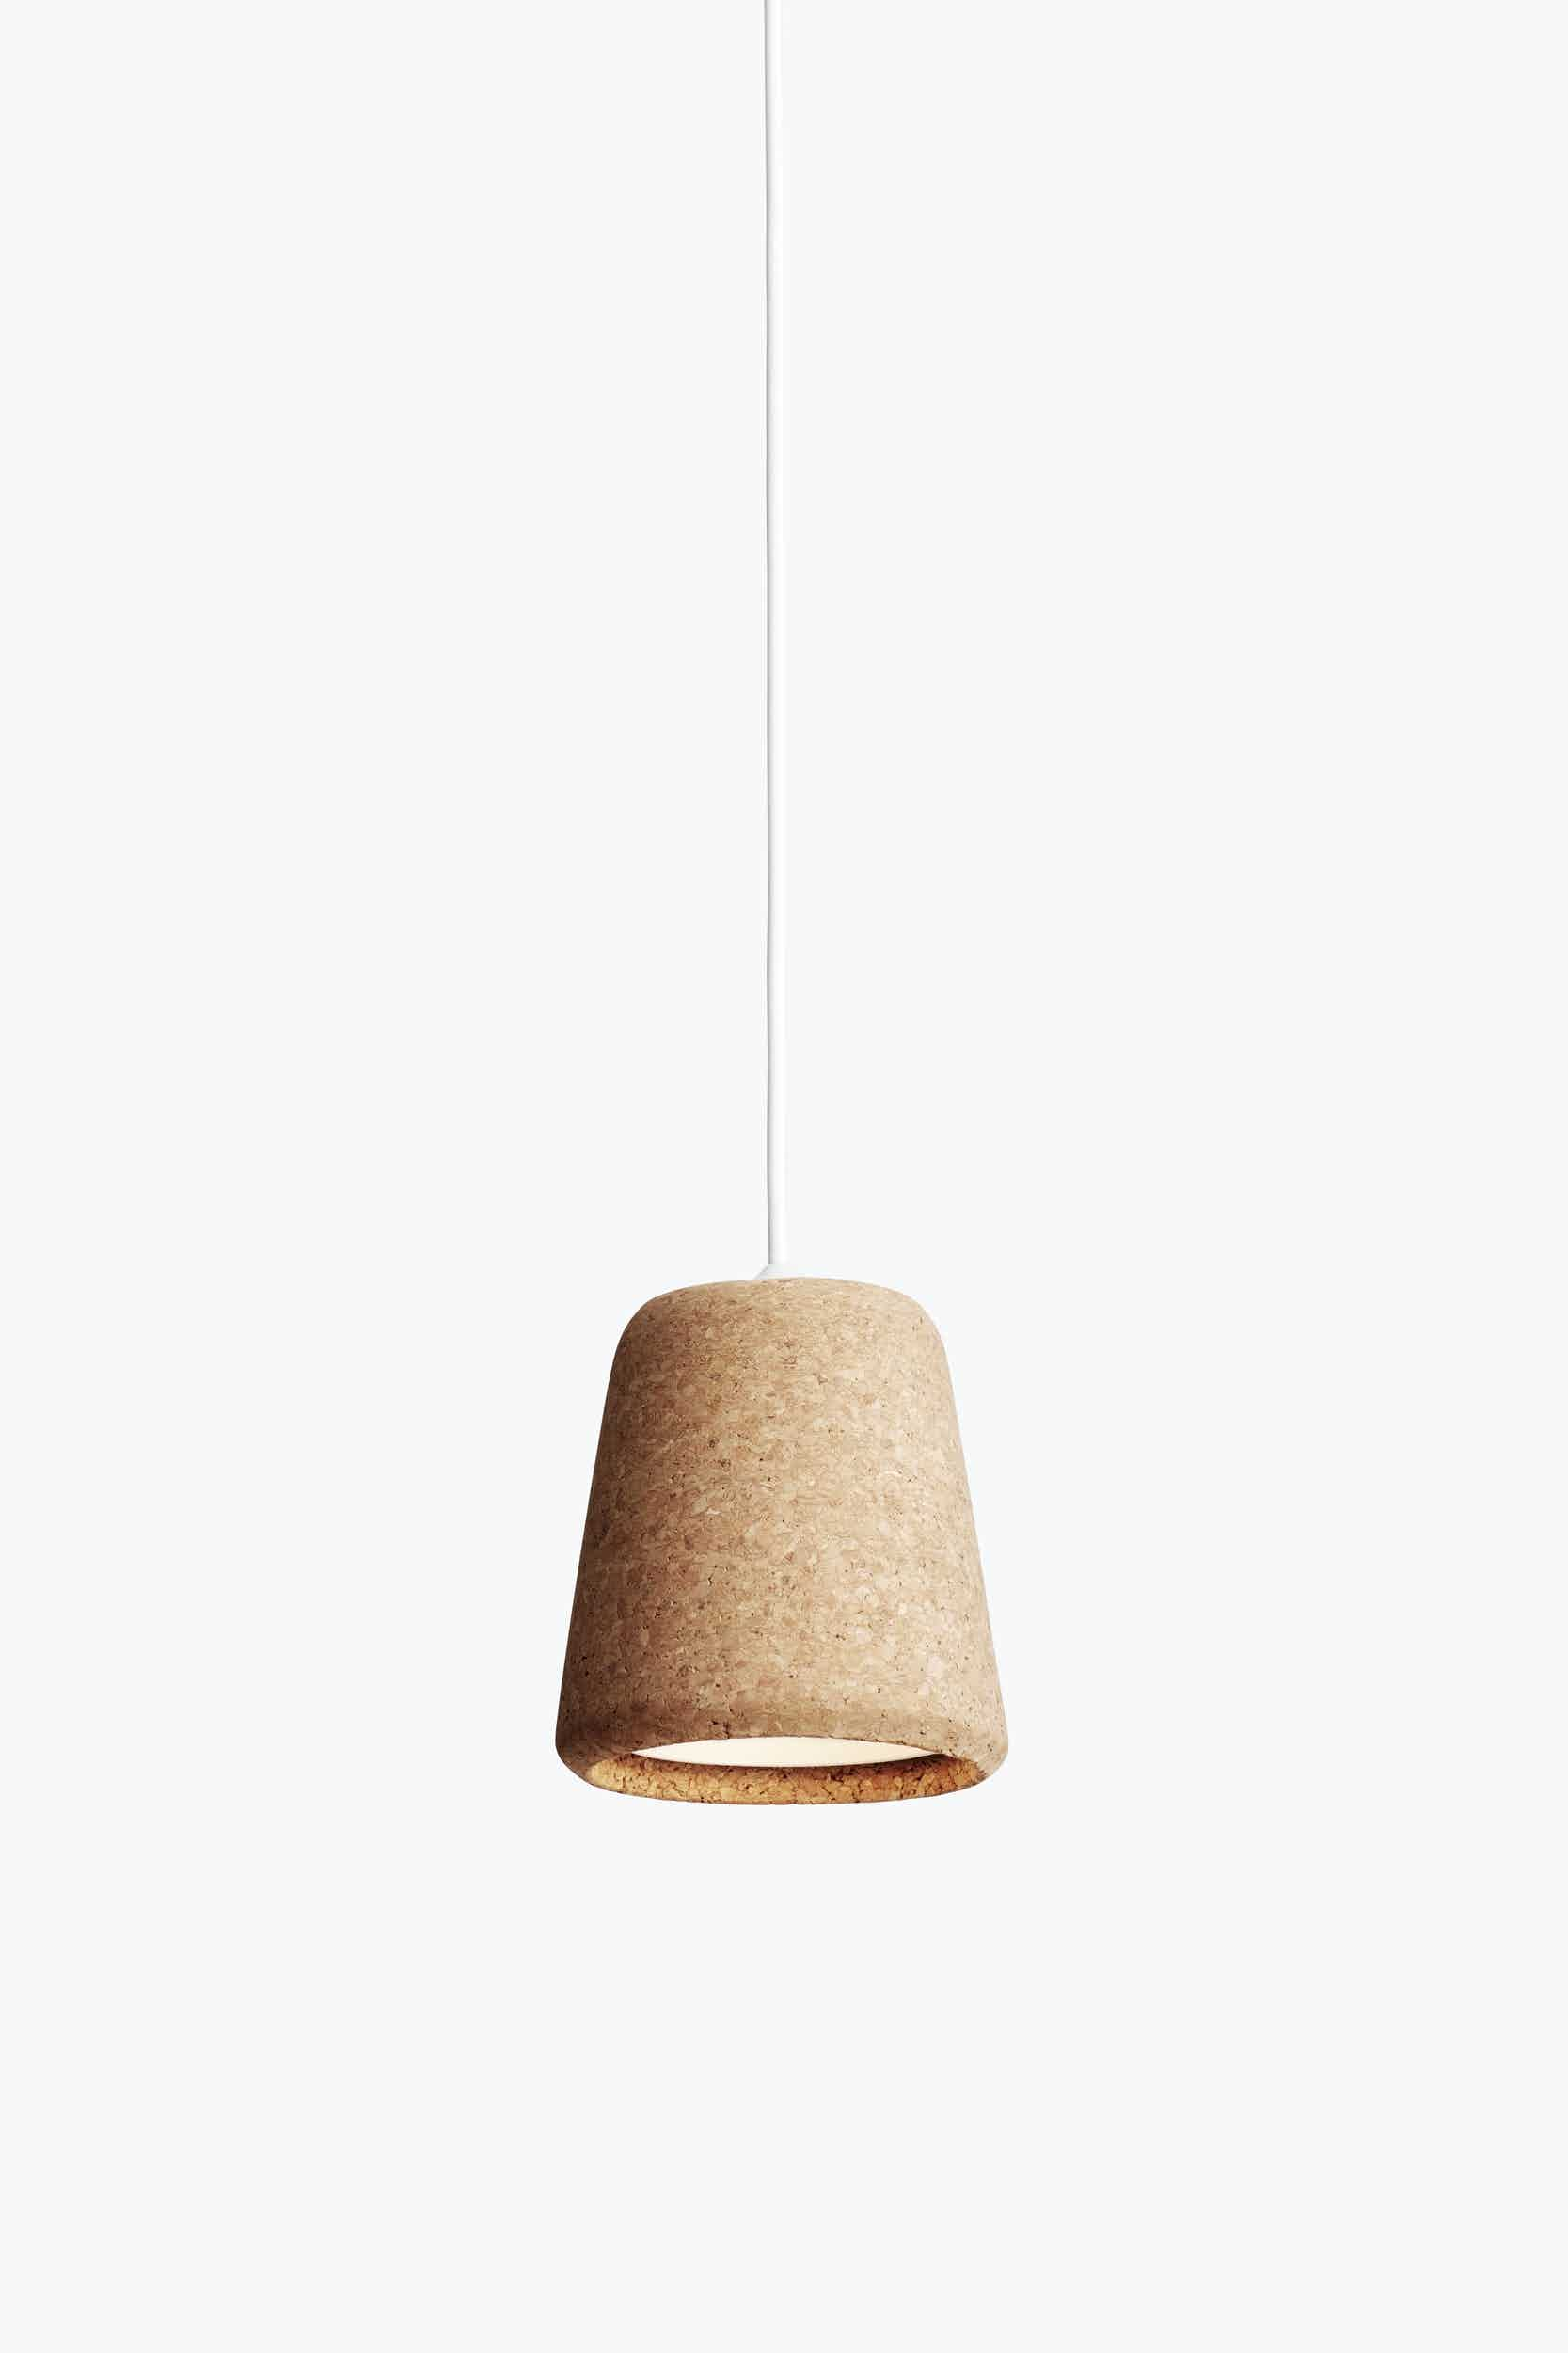 New works furniture material pendant natural cork grey haute living